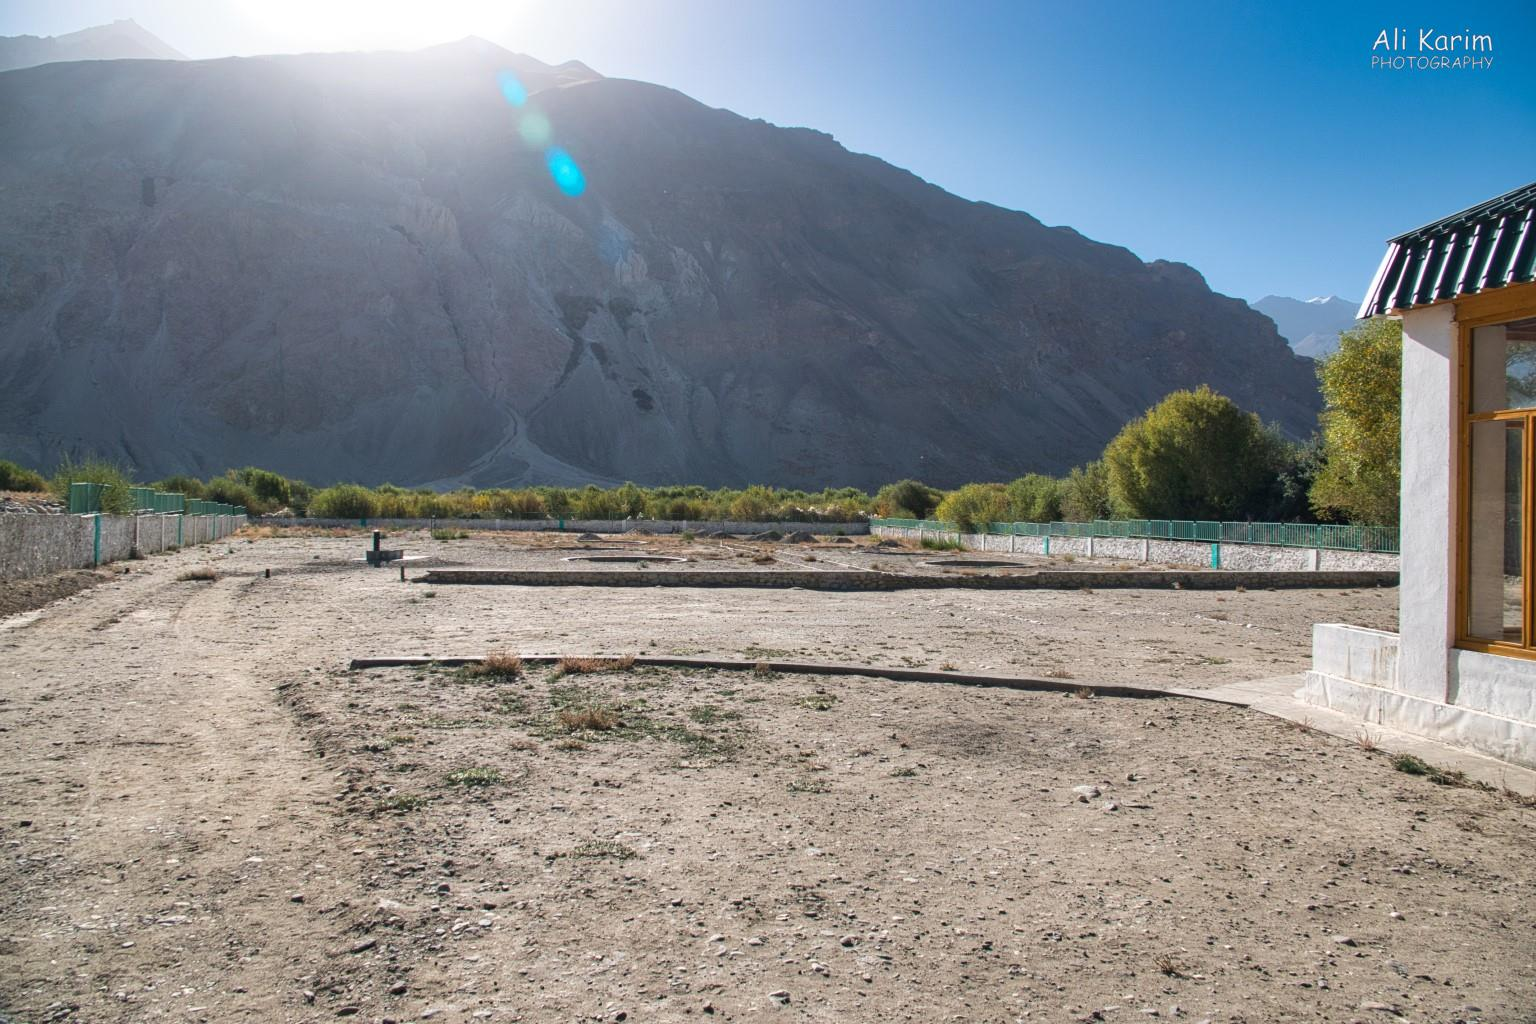 Langar, Bulunkul Tajikistan, Field where the faithful had gathered in Langar to have an audience with the Aga Khan in May 1995